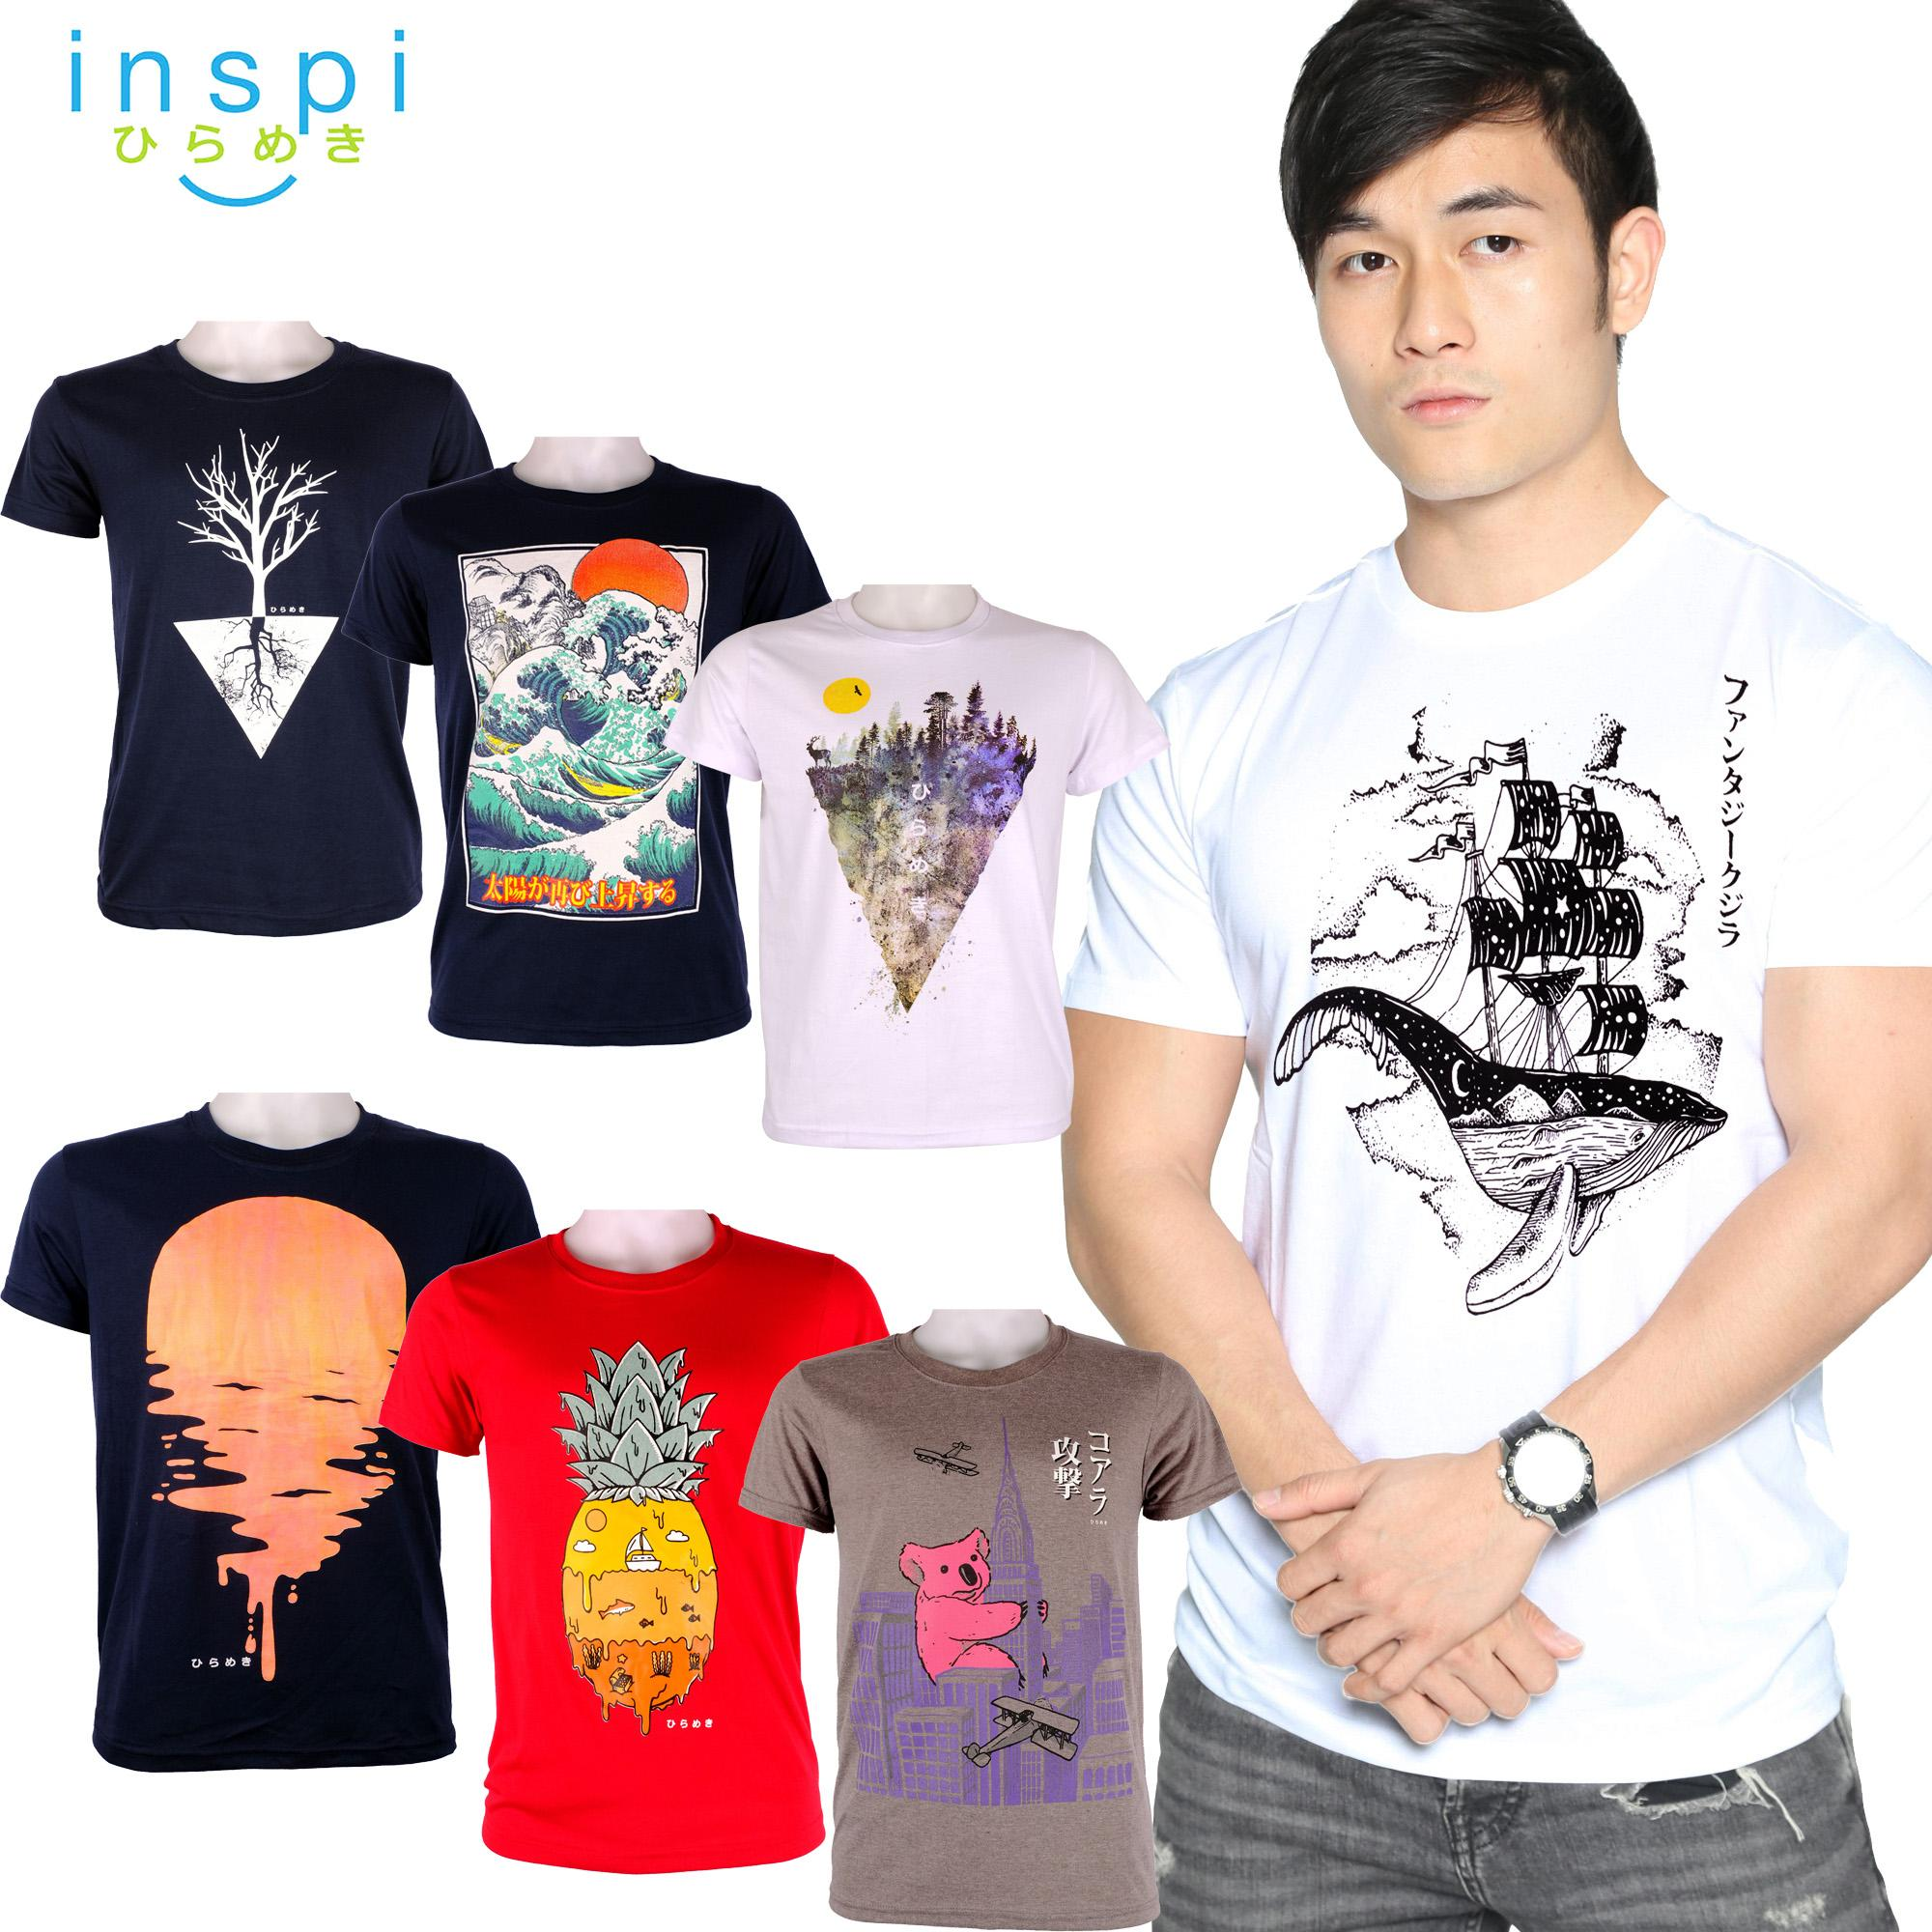 29429772b03 INSPI Tees Nature Collection tshirt printed graphic tee Mens t shirt shirts  for men tshirts sale